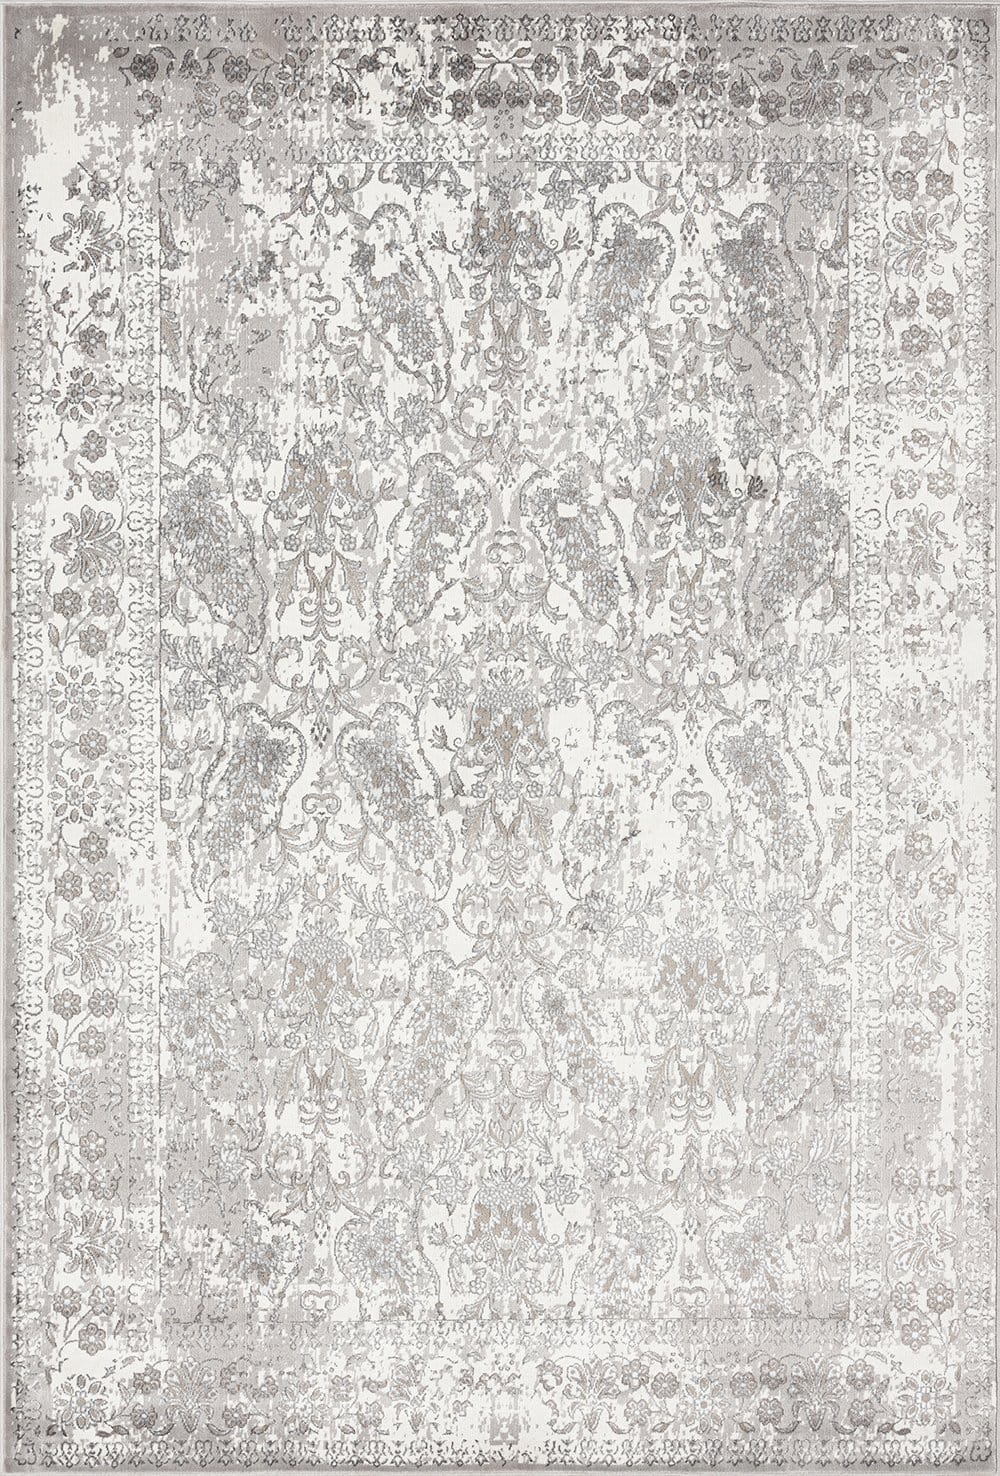 Aaerin Charcoal Grey and Ivory Traditional Distressed Rug